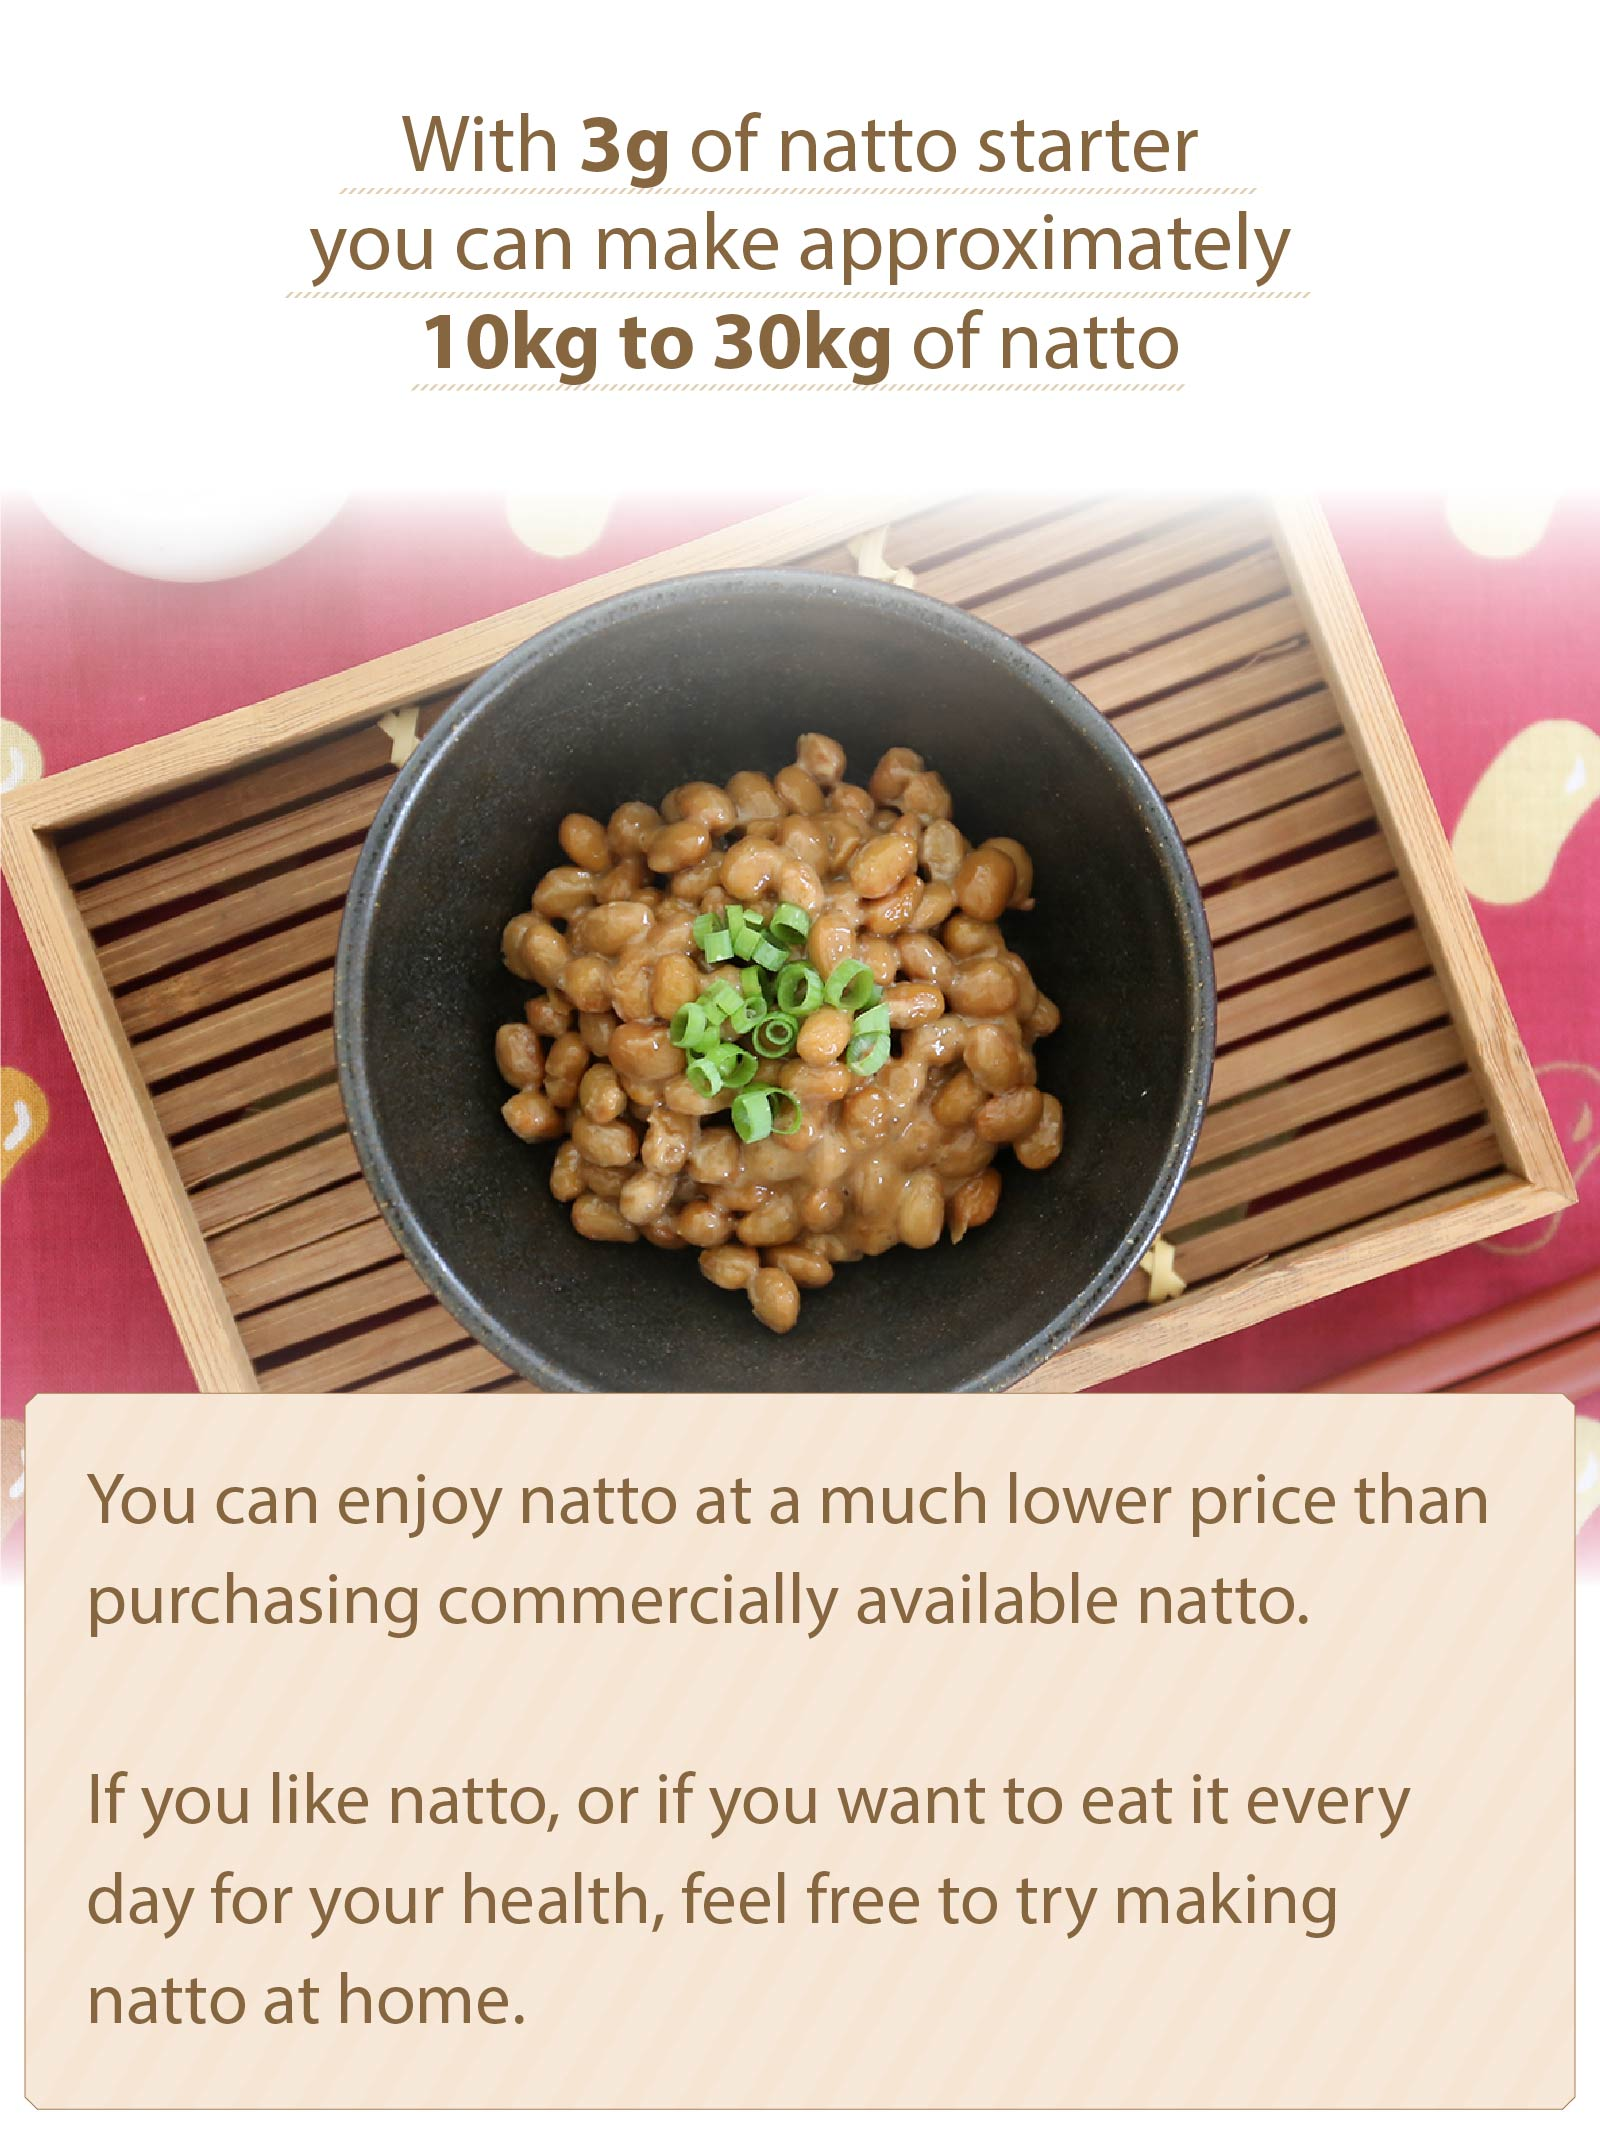 3g Natto Can Make Up to 10kg to 30kg of Natto